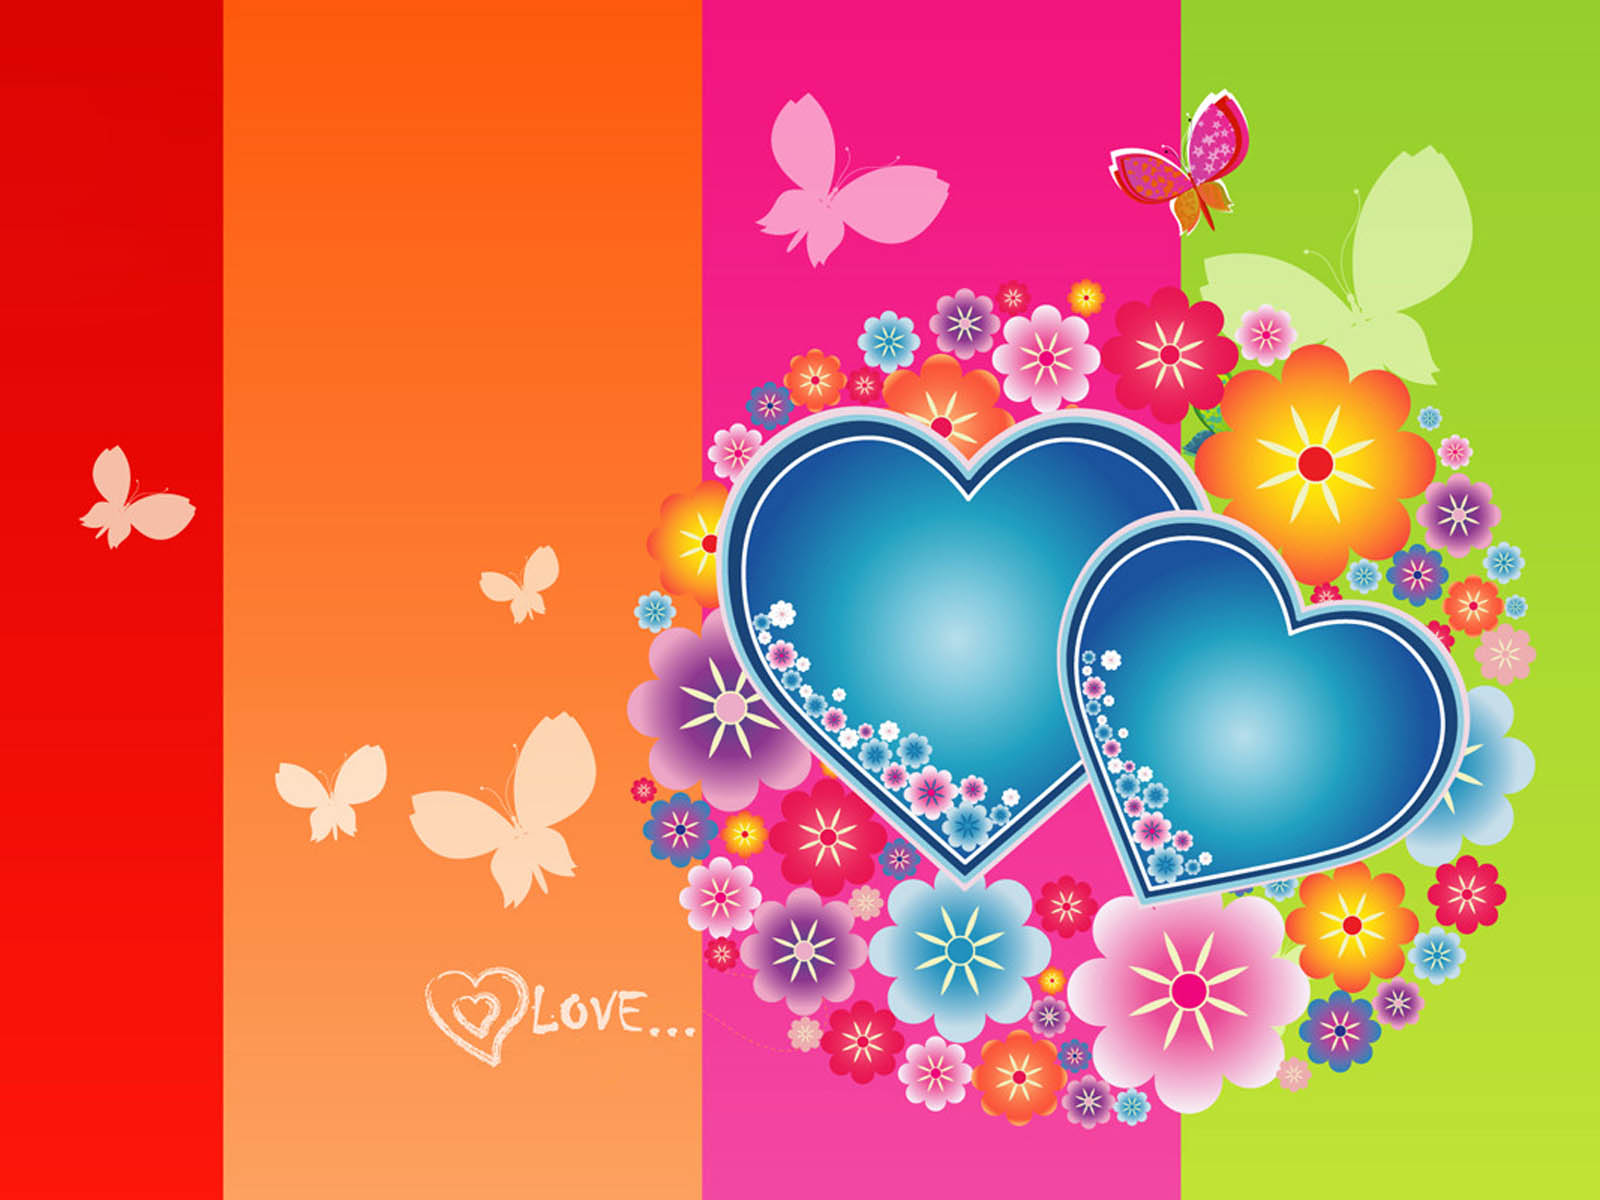 wallpaper Love Heart Wallpapers 1600x1200